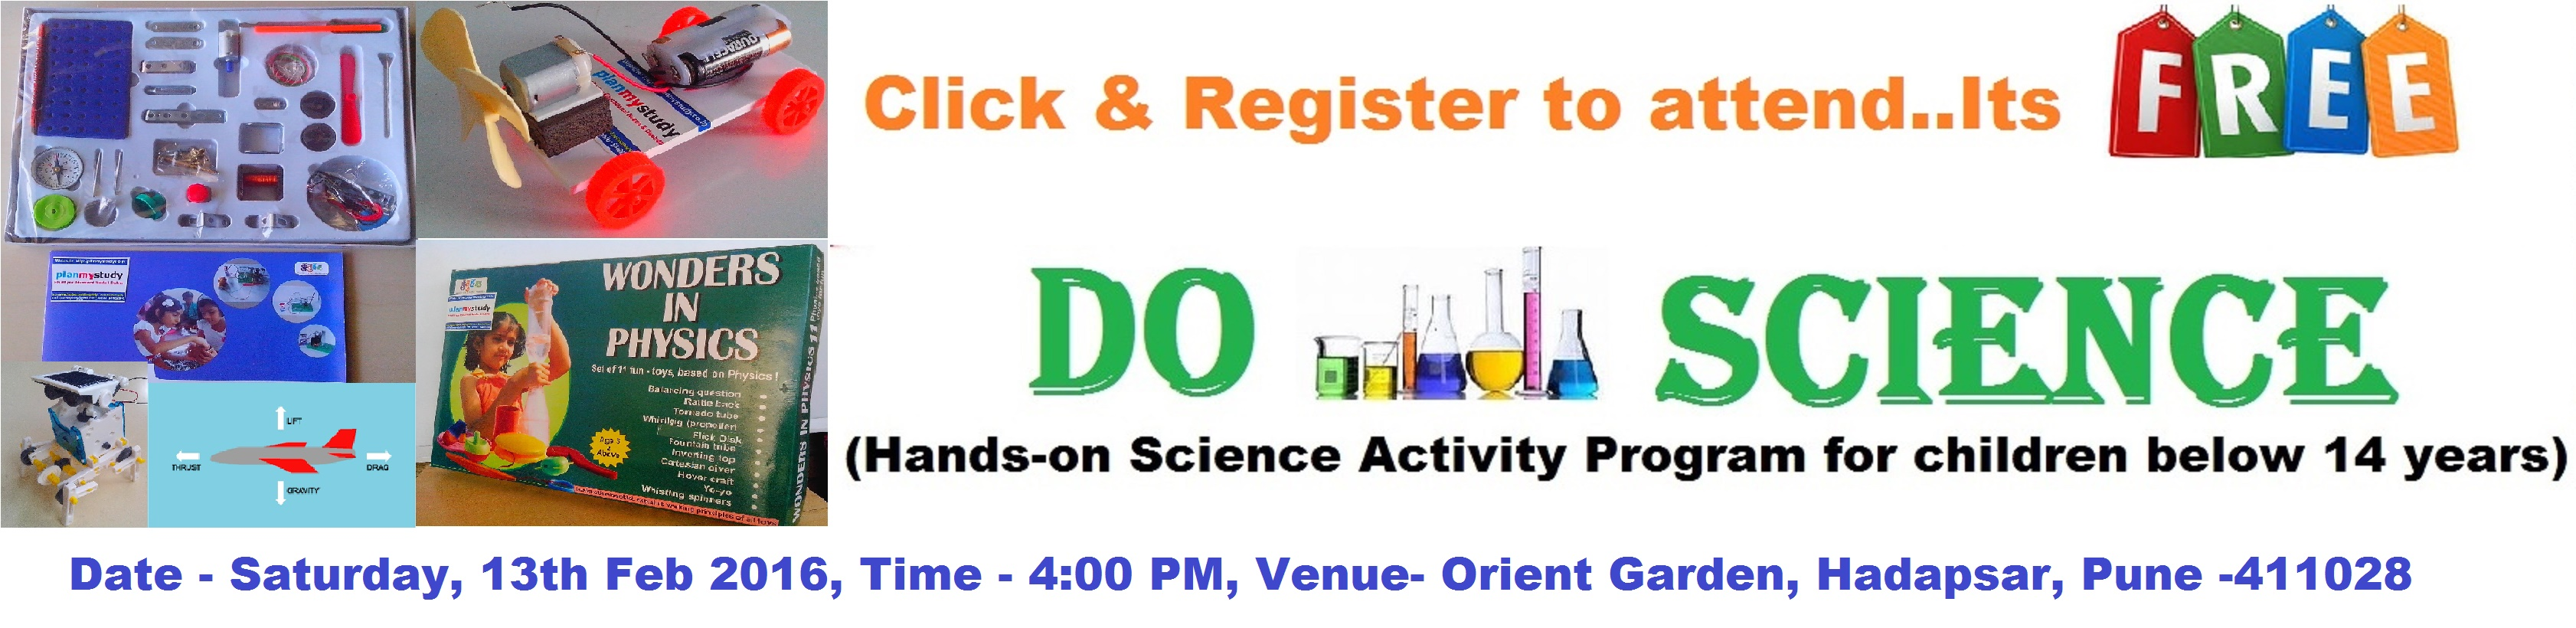 Do-Science, Free Hands-on Science Activity Program for children below 14 years